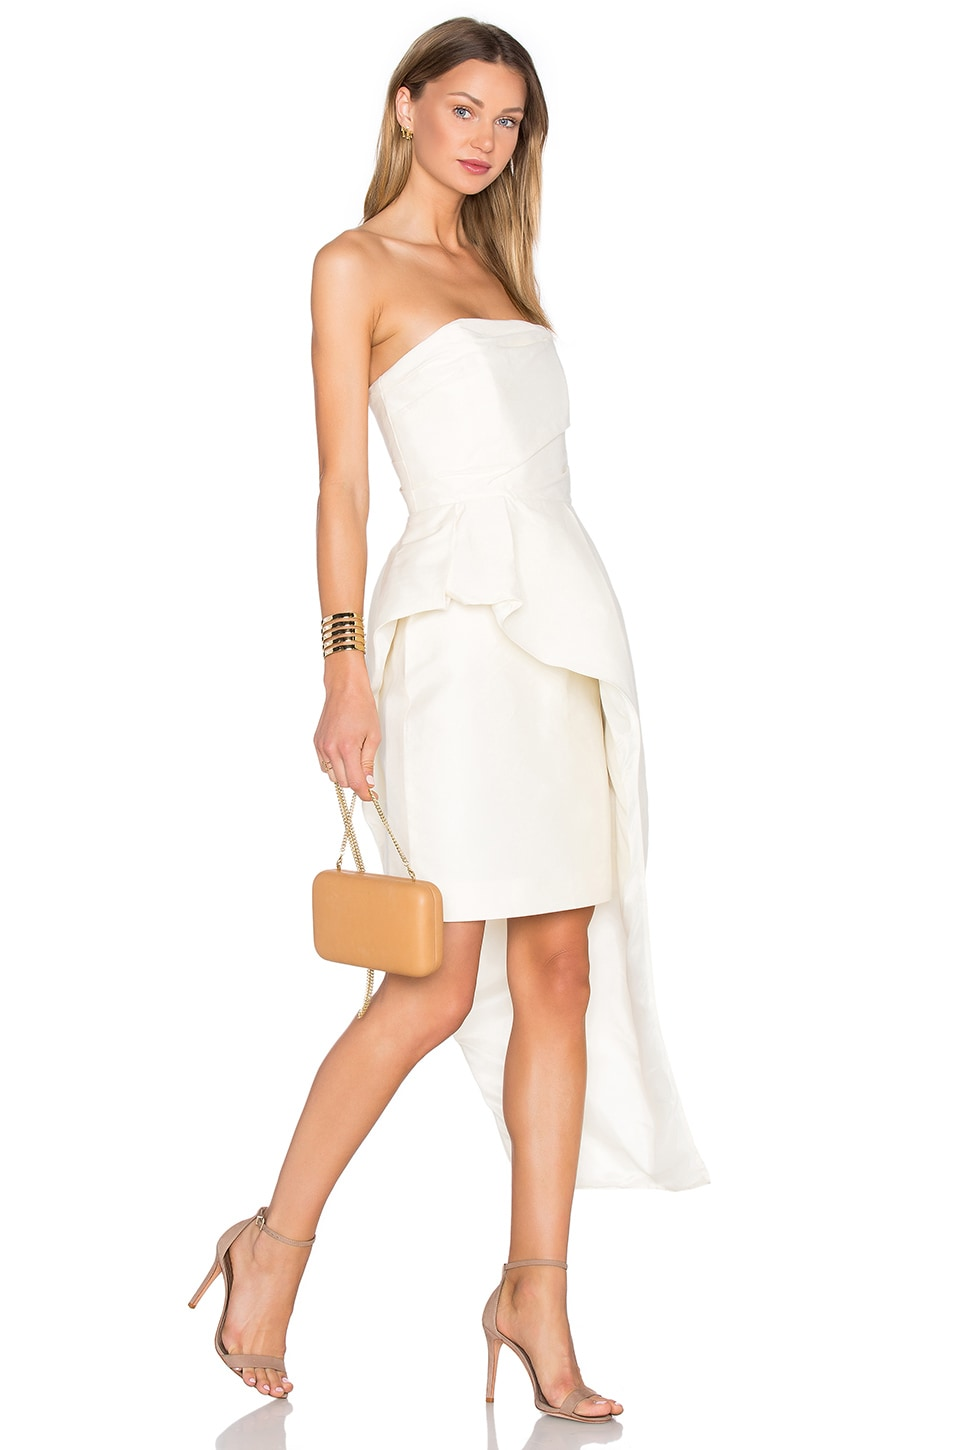 The Alston Silk Cotton Dress by TY-LR